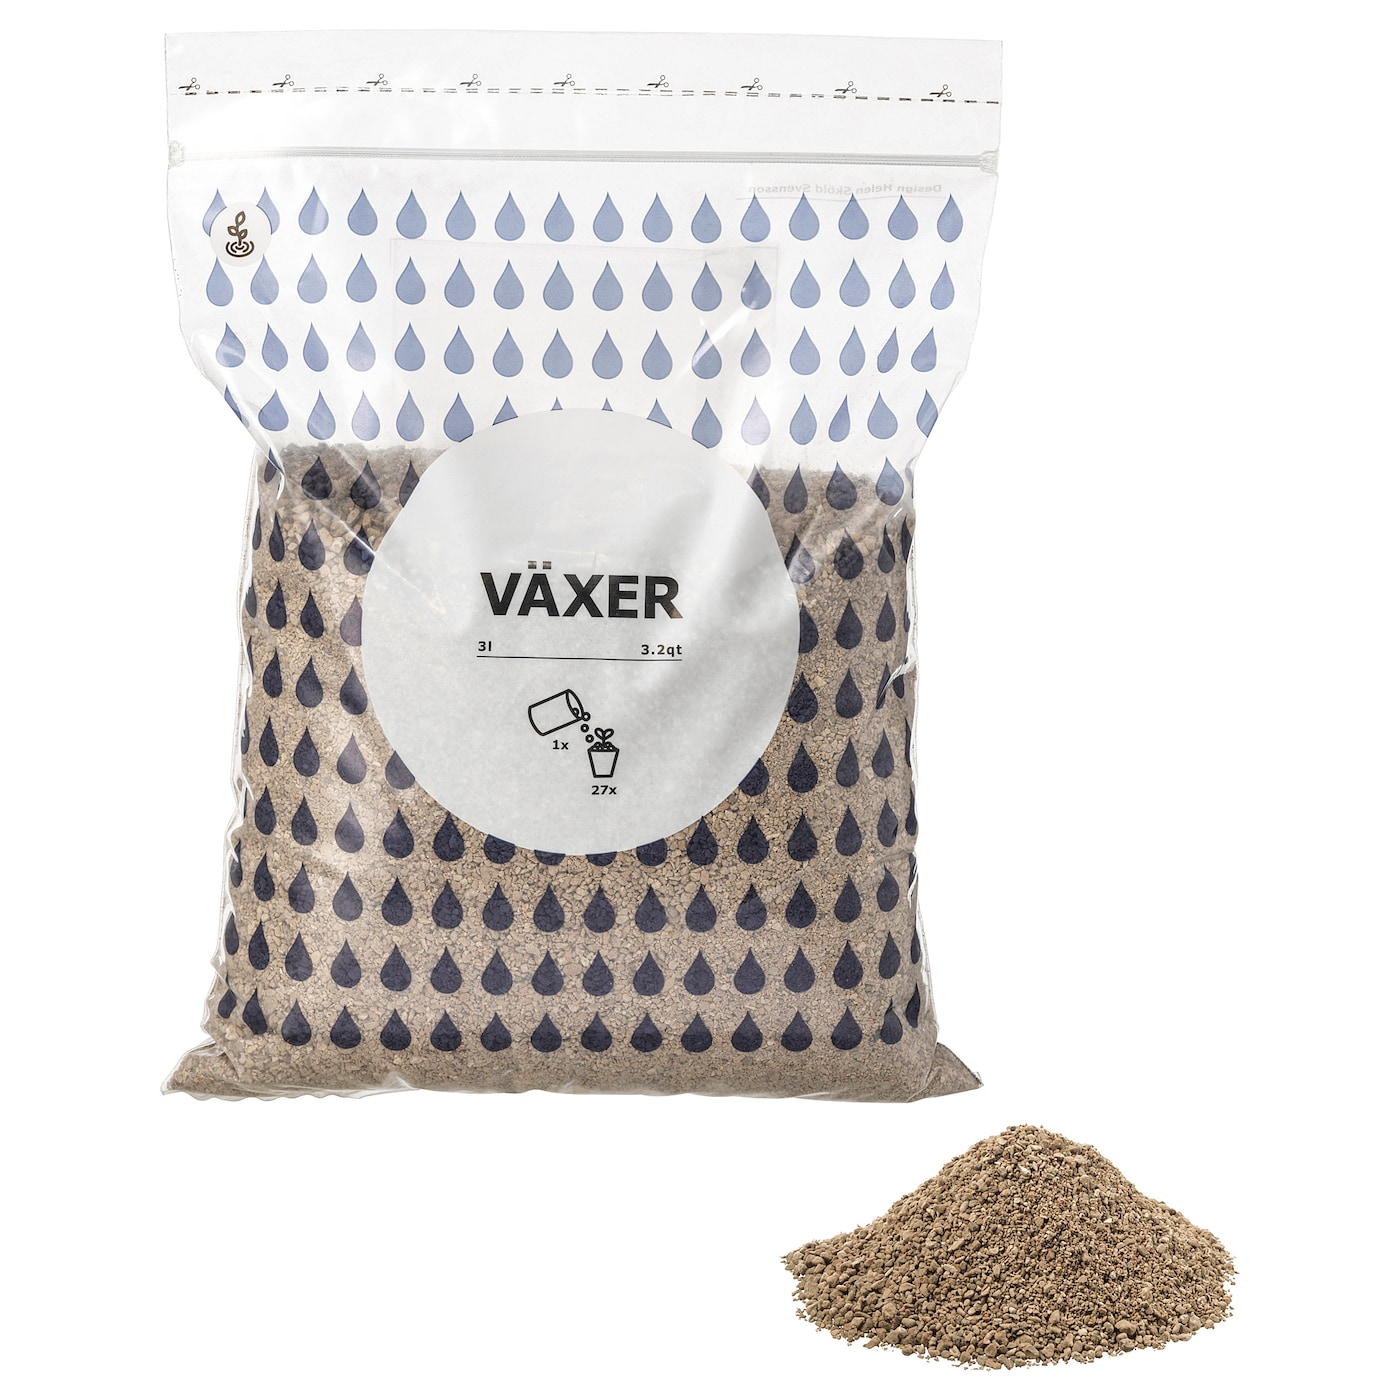 IKEA VÄXER growing media Pumice stones are perfect for hydroponic growing.